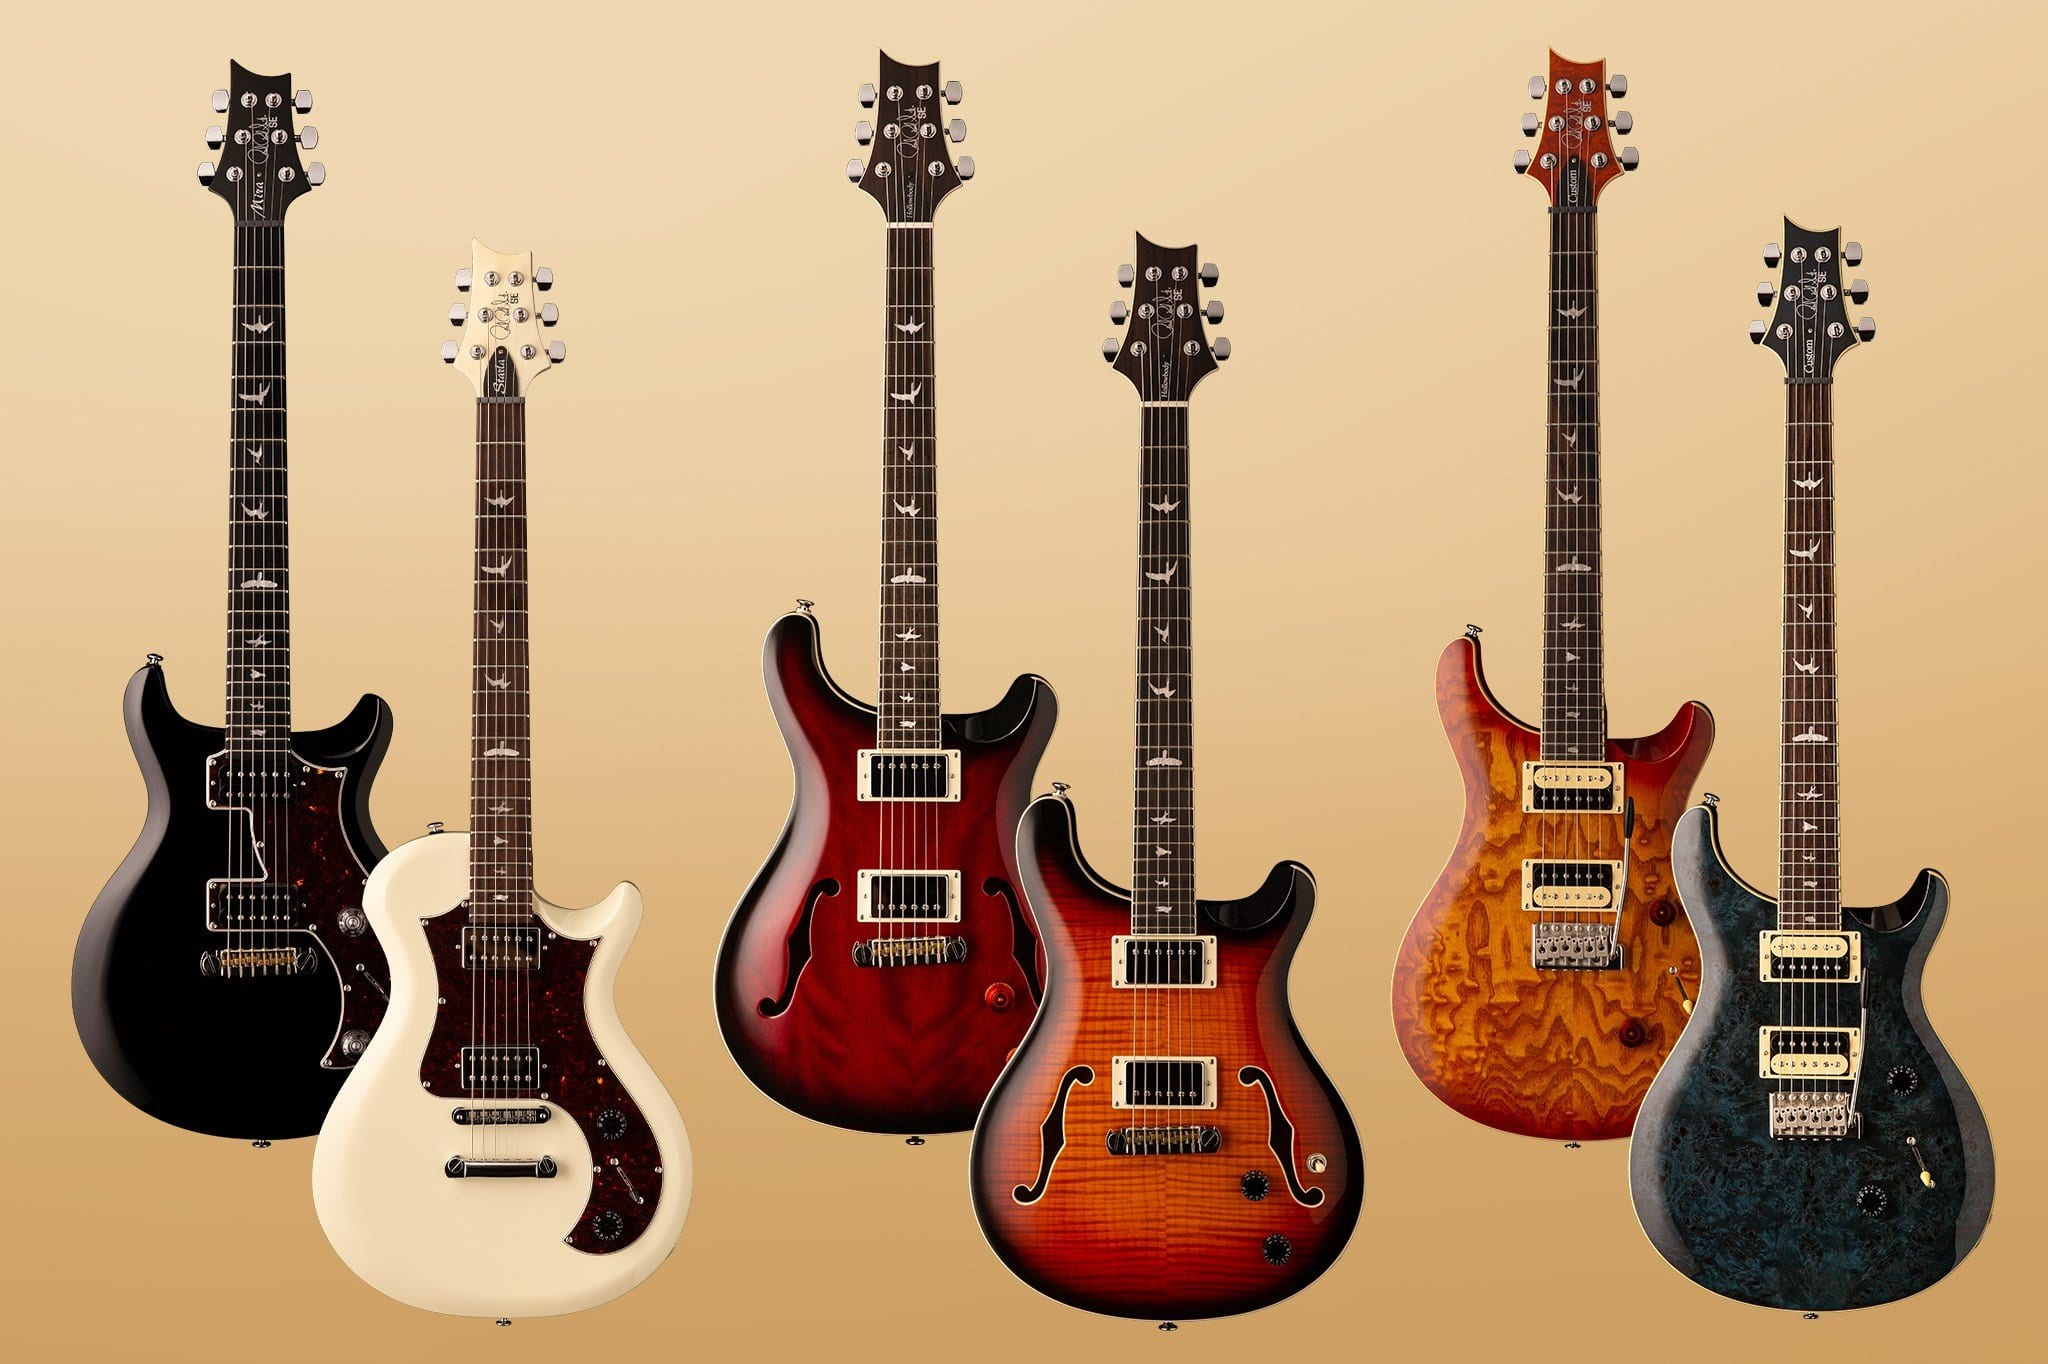 New PRS SE models launched including Mira and Starla